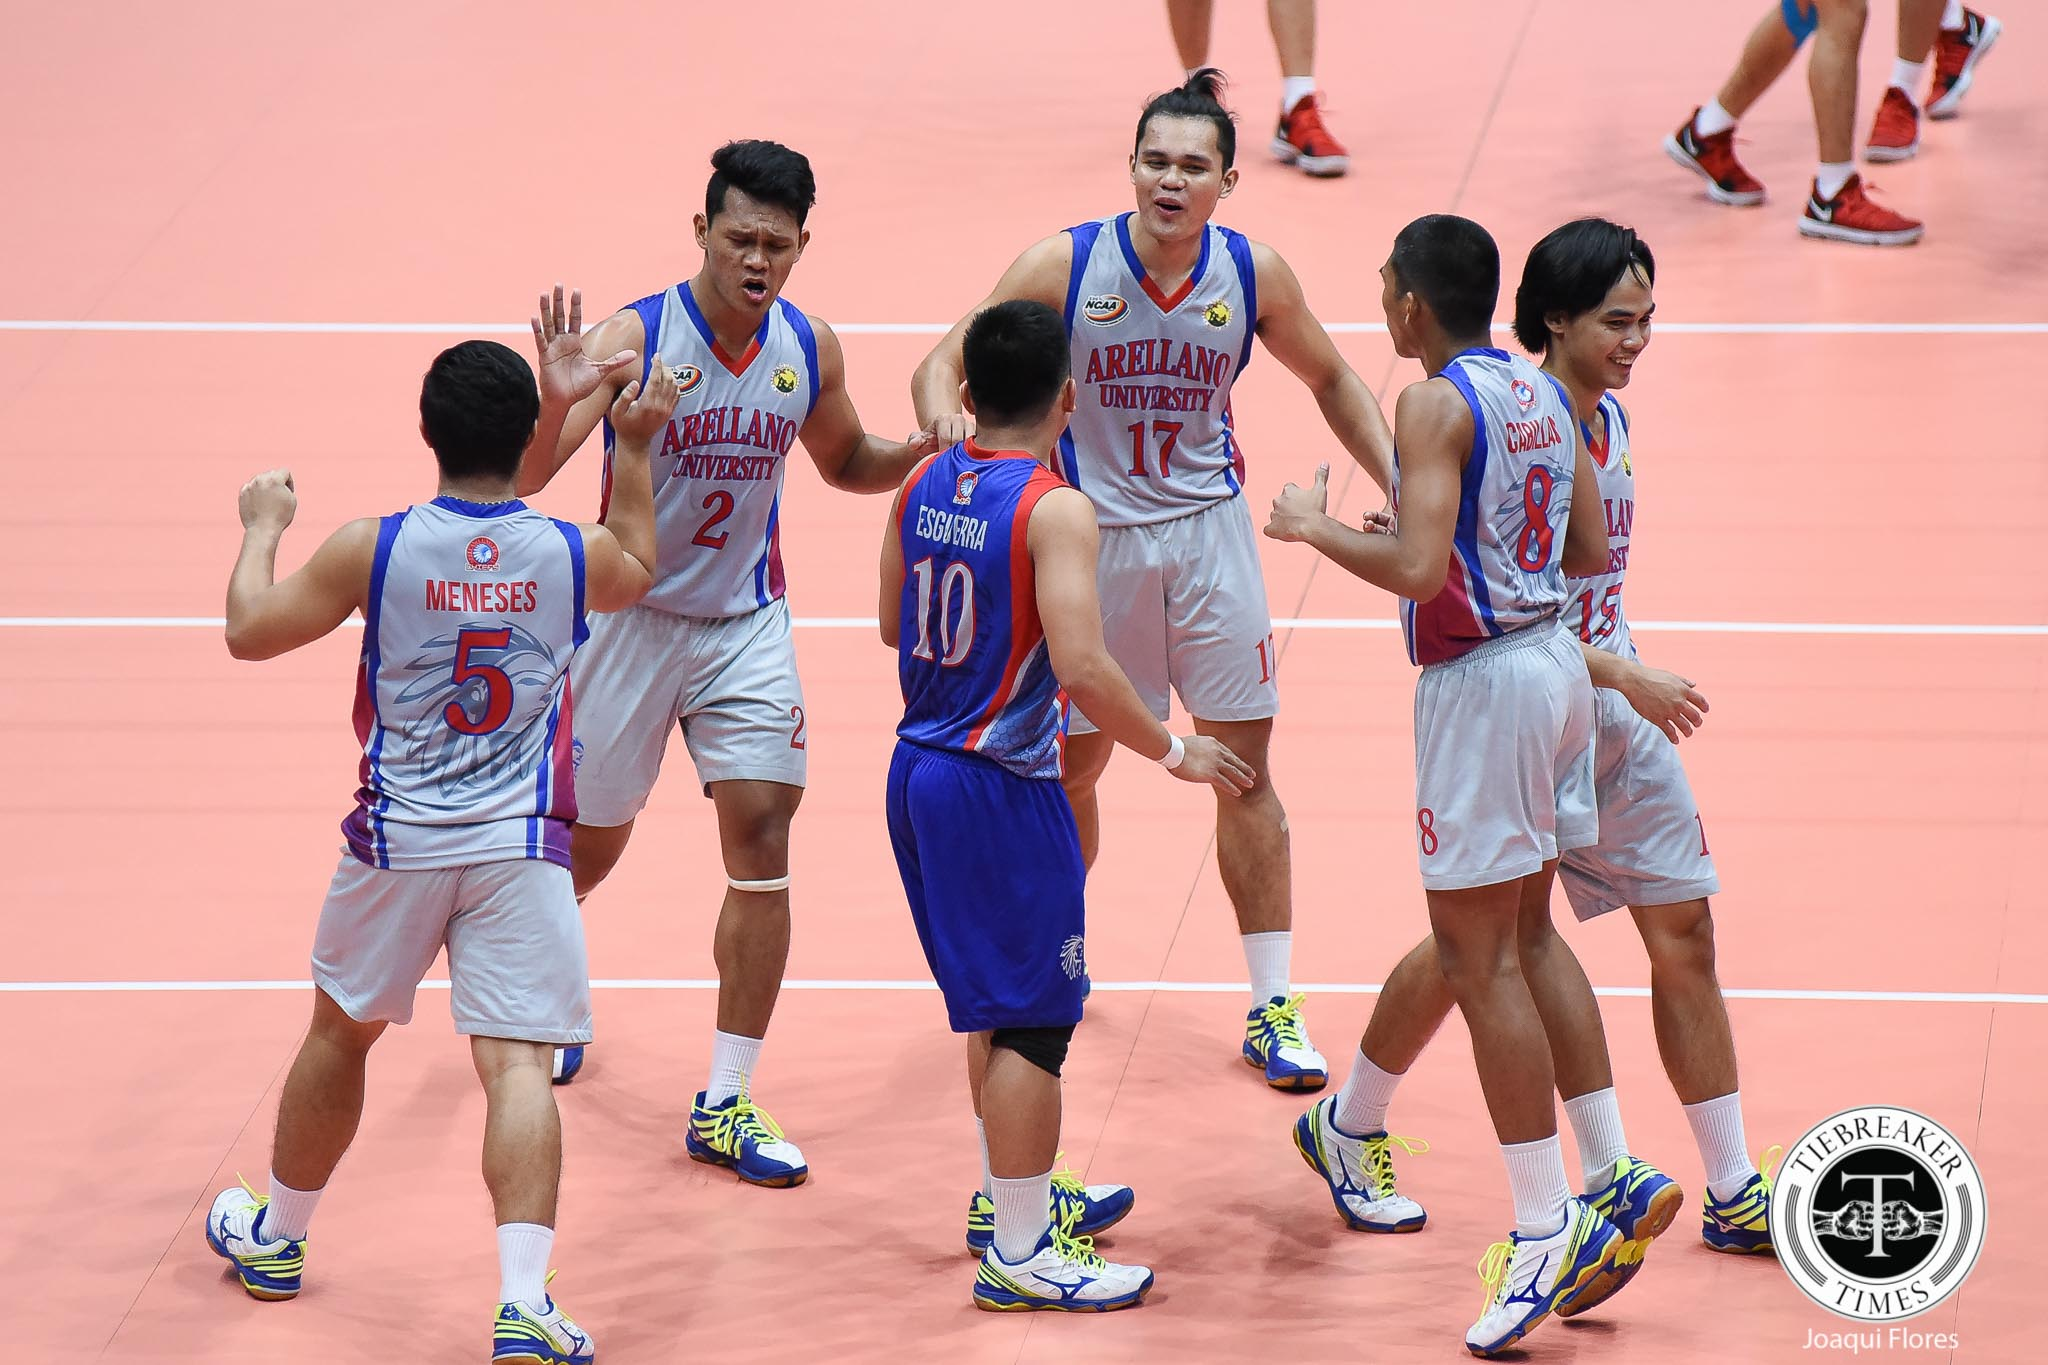 Philippine Sports News - Tiebreaker Times Chiefs romp Knights to keep unbeaten streak AU CSJL NCAA News Volleyball  Sherwin Meneses NCAA Season 93 Men's Volleyball NCAA Season 93 Letran Men's Volleyball Kevin Liberato Joshua Esguerra John Cabillan John Blanco Edmark Meneses Brian Esquibel Bobby Gatdula Arellano Men's Volleyball